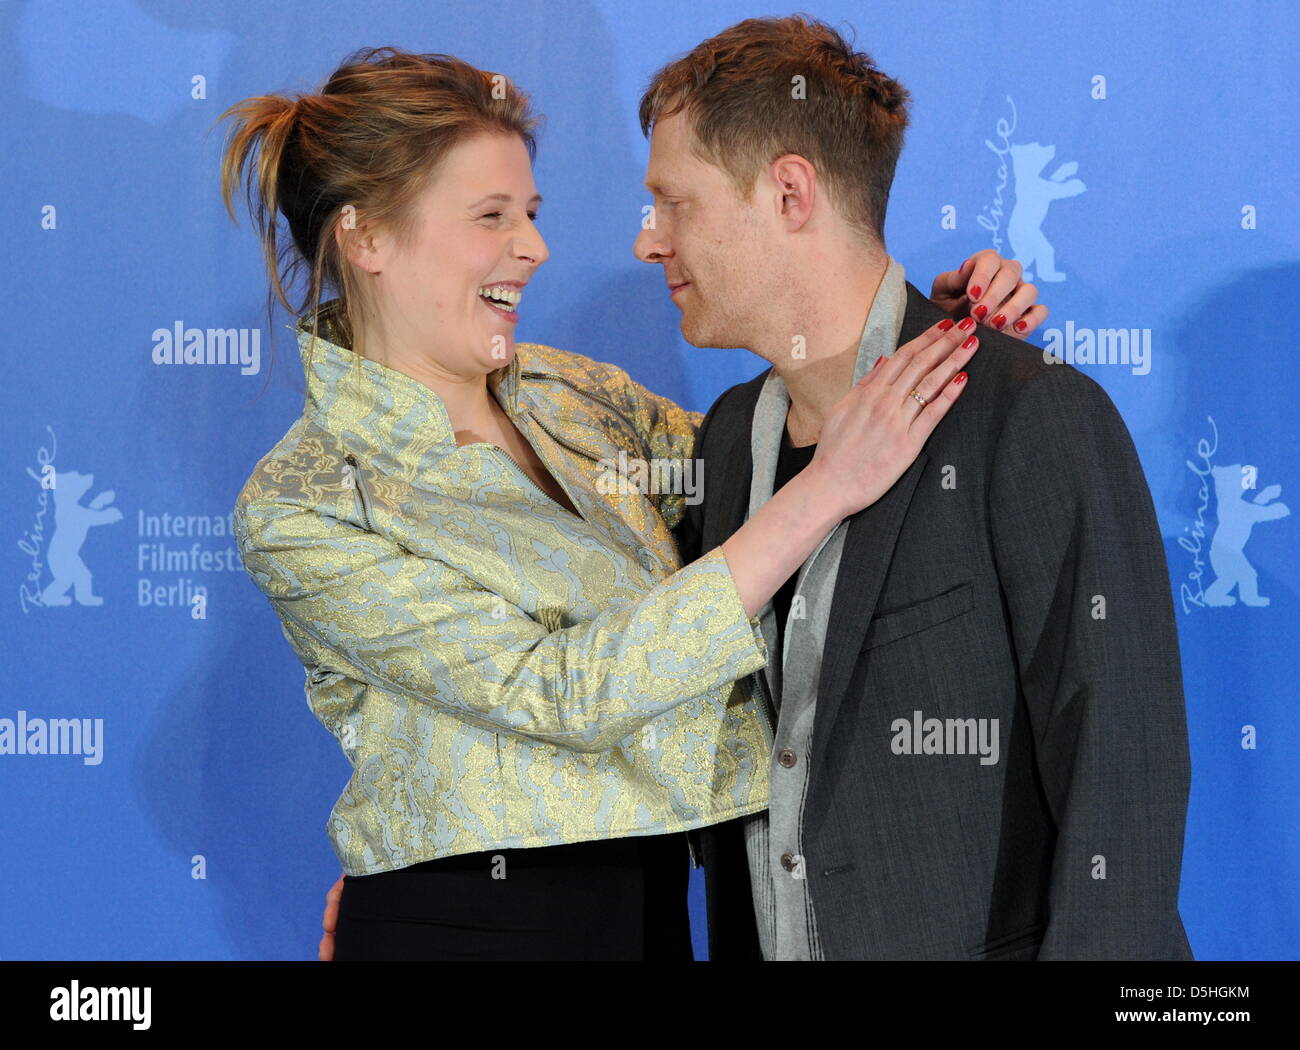 Austrian actor Andreas Lust (R) and Austrian actress Franziska Weisz (L) pose during the photo call for the film - Stock Image